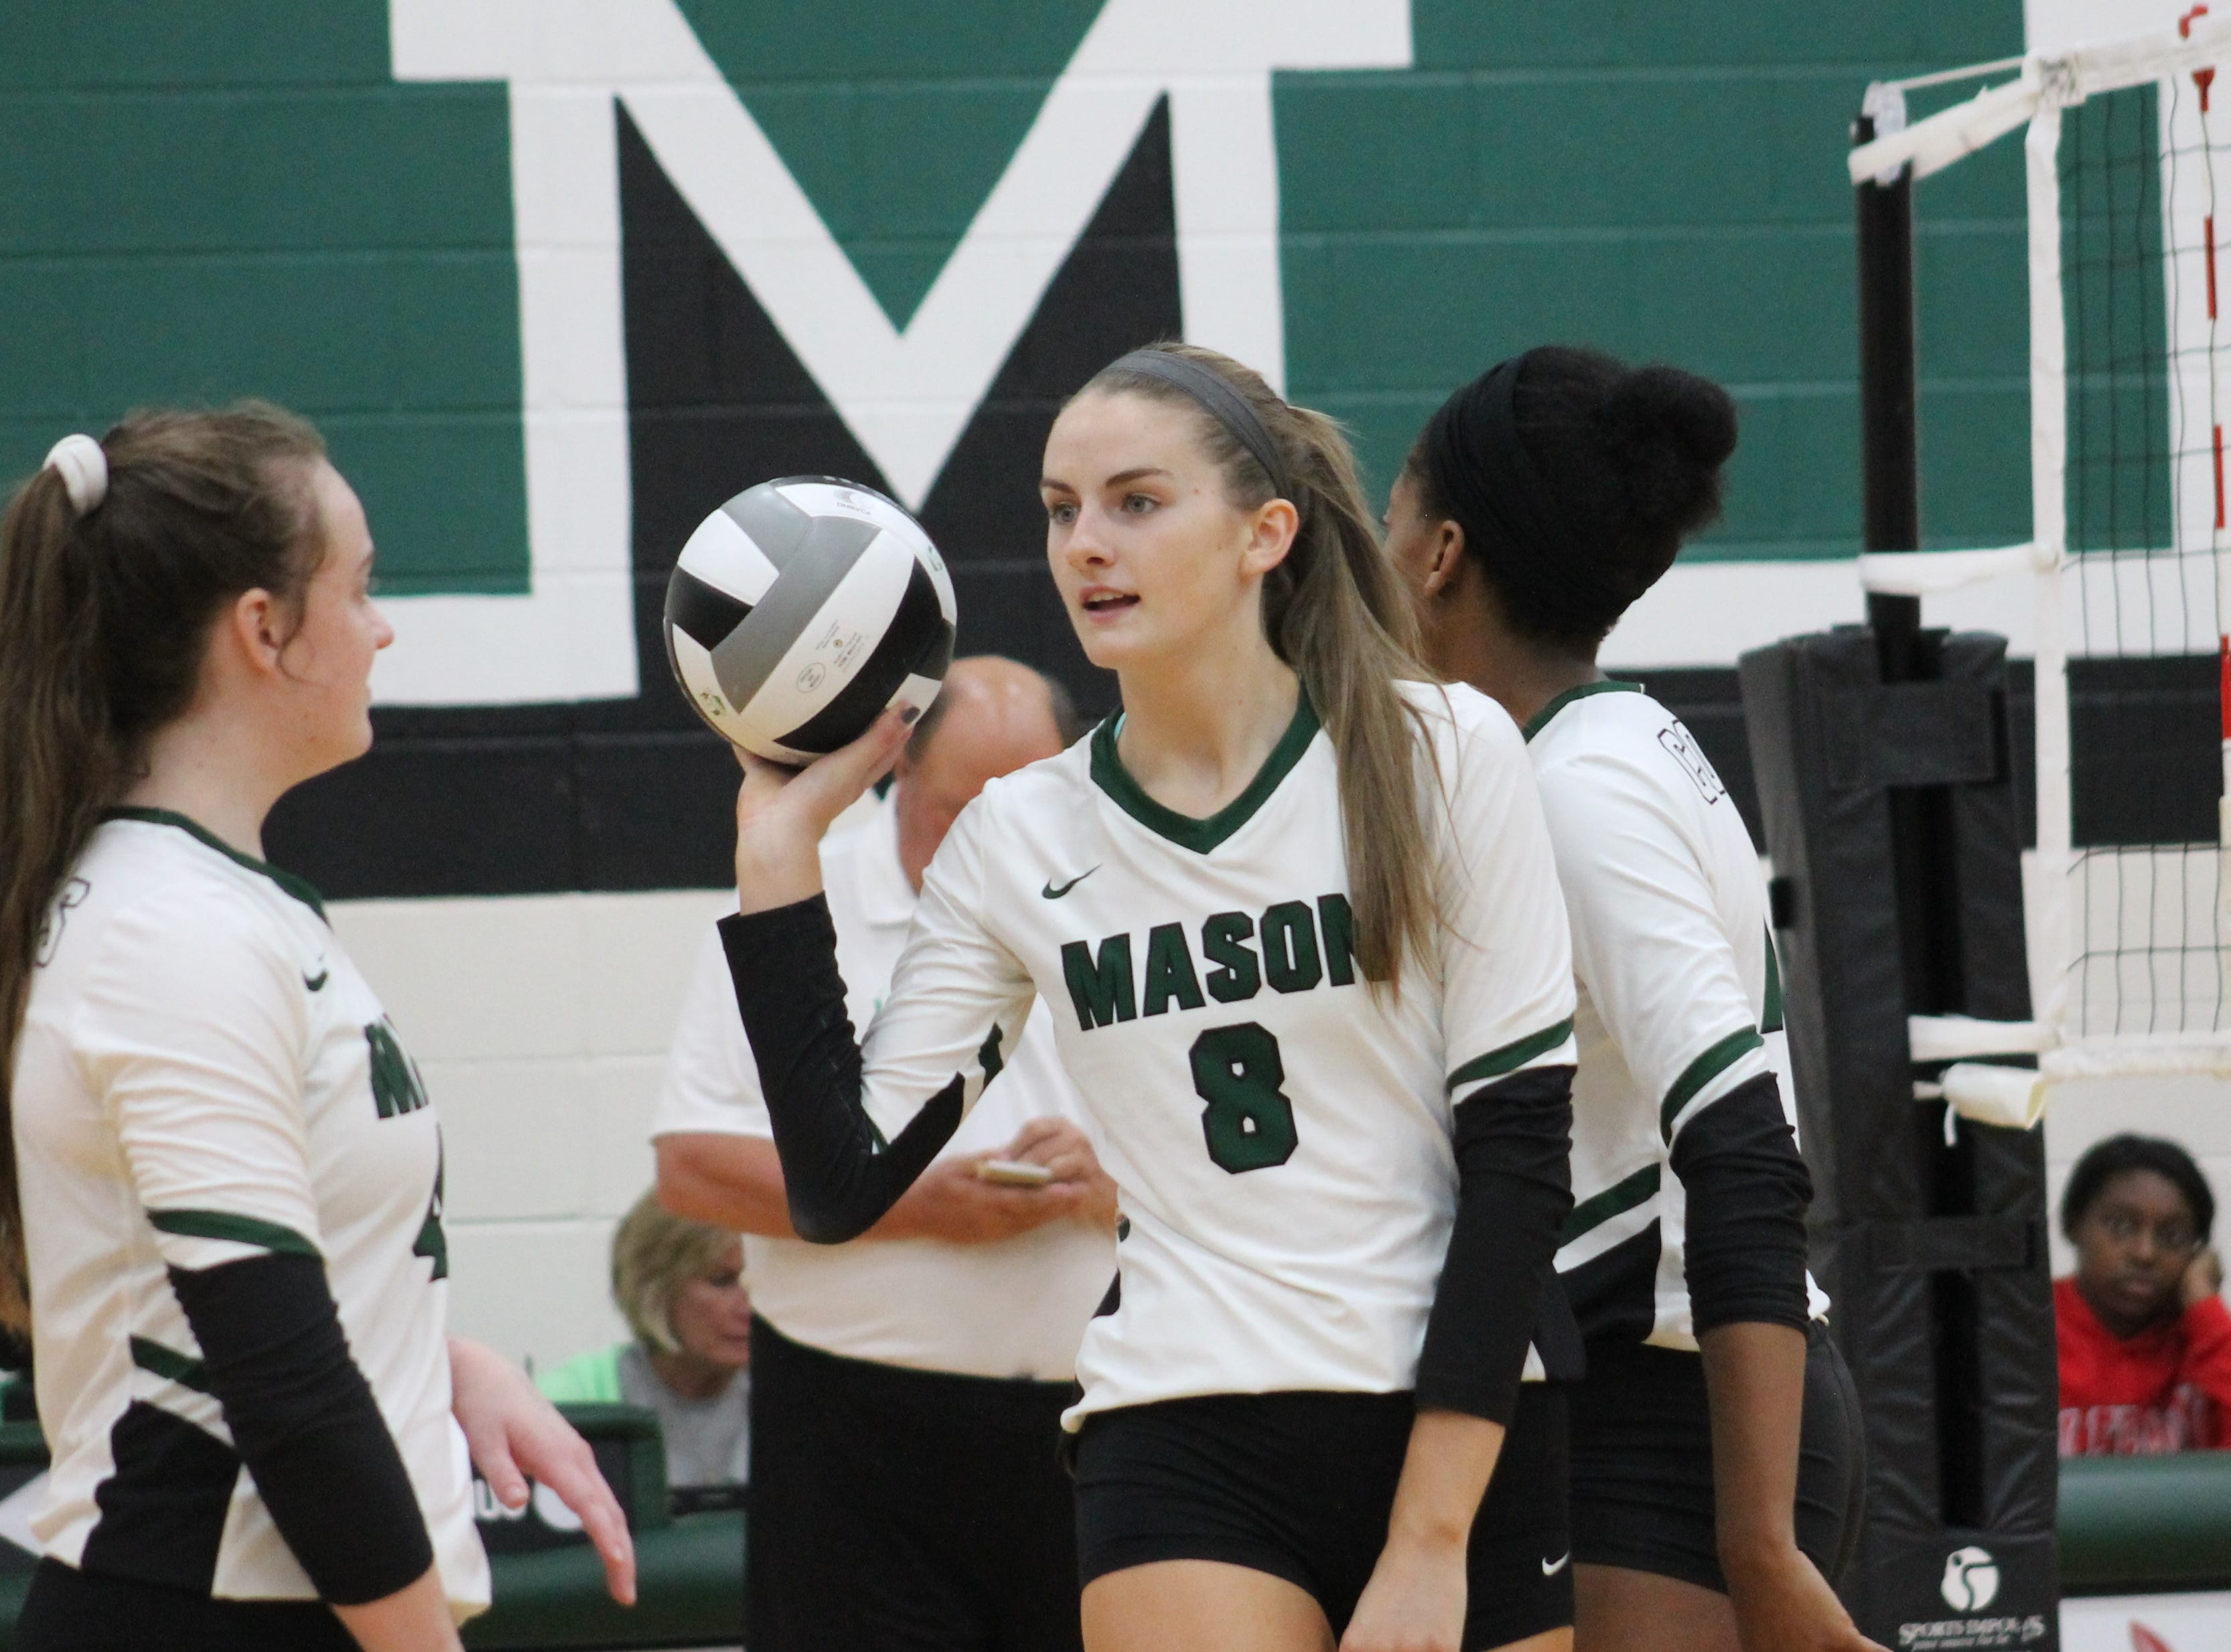 Mason senior hitter Maggie King returns the ball to the server after a point